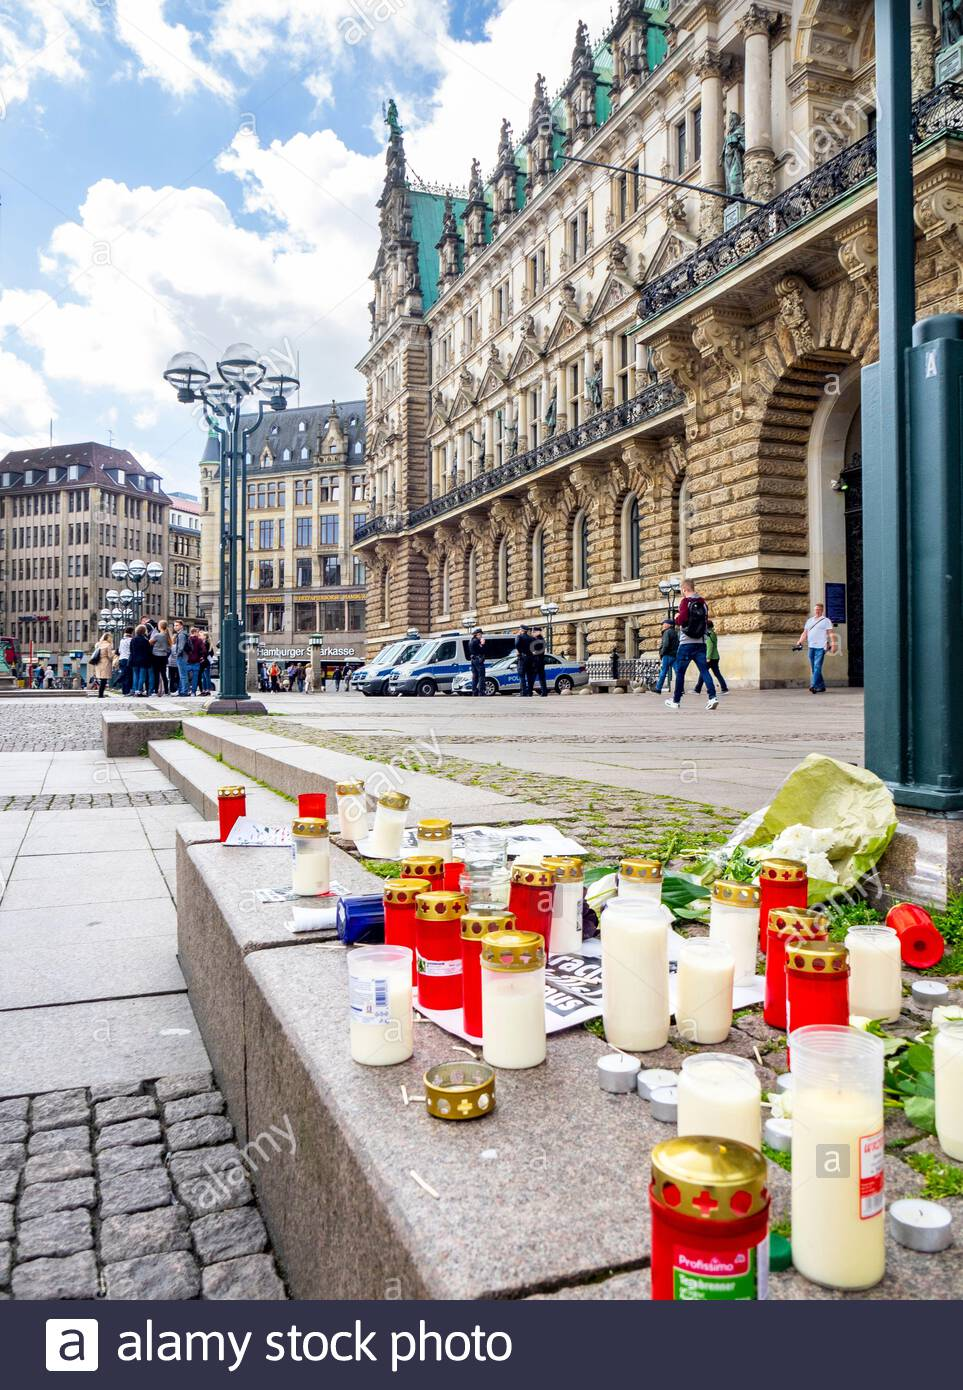 flowers candles and anti racism poster left at rathausmarkt in front of rathaus city hall altstadt hamburg germany 2AE99T8